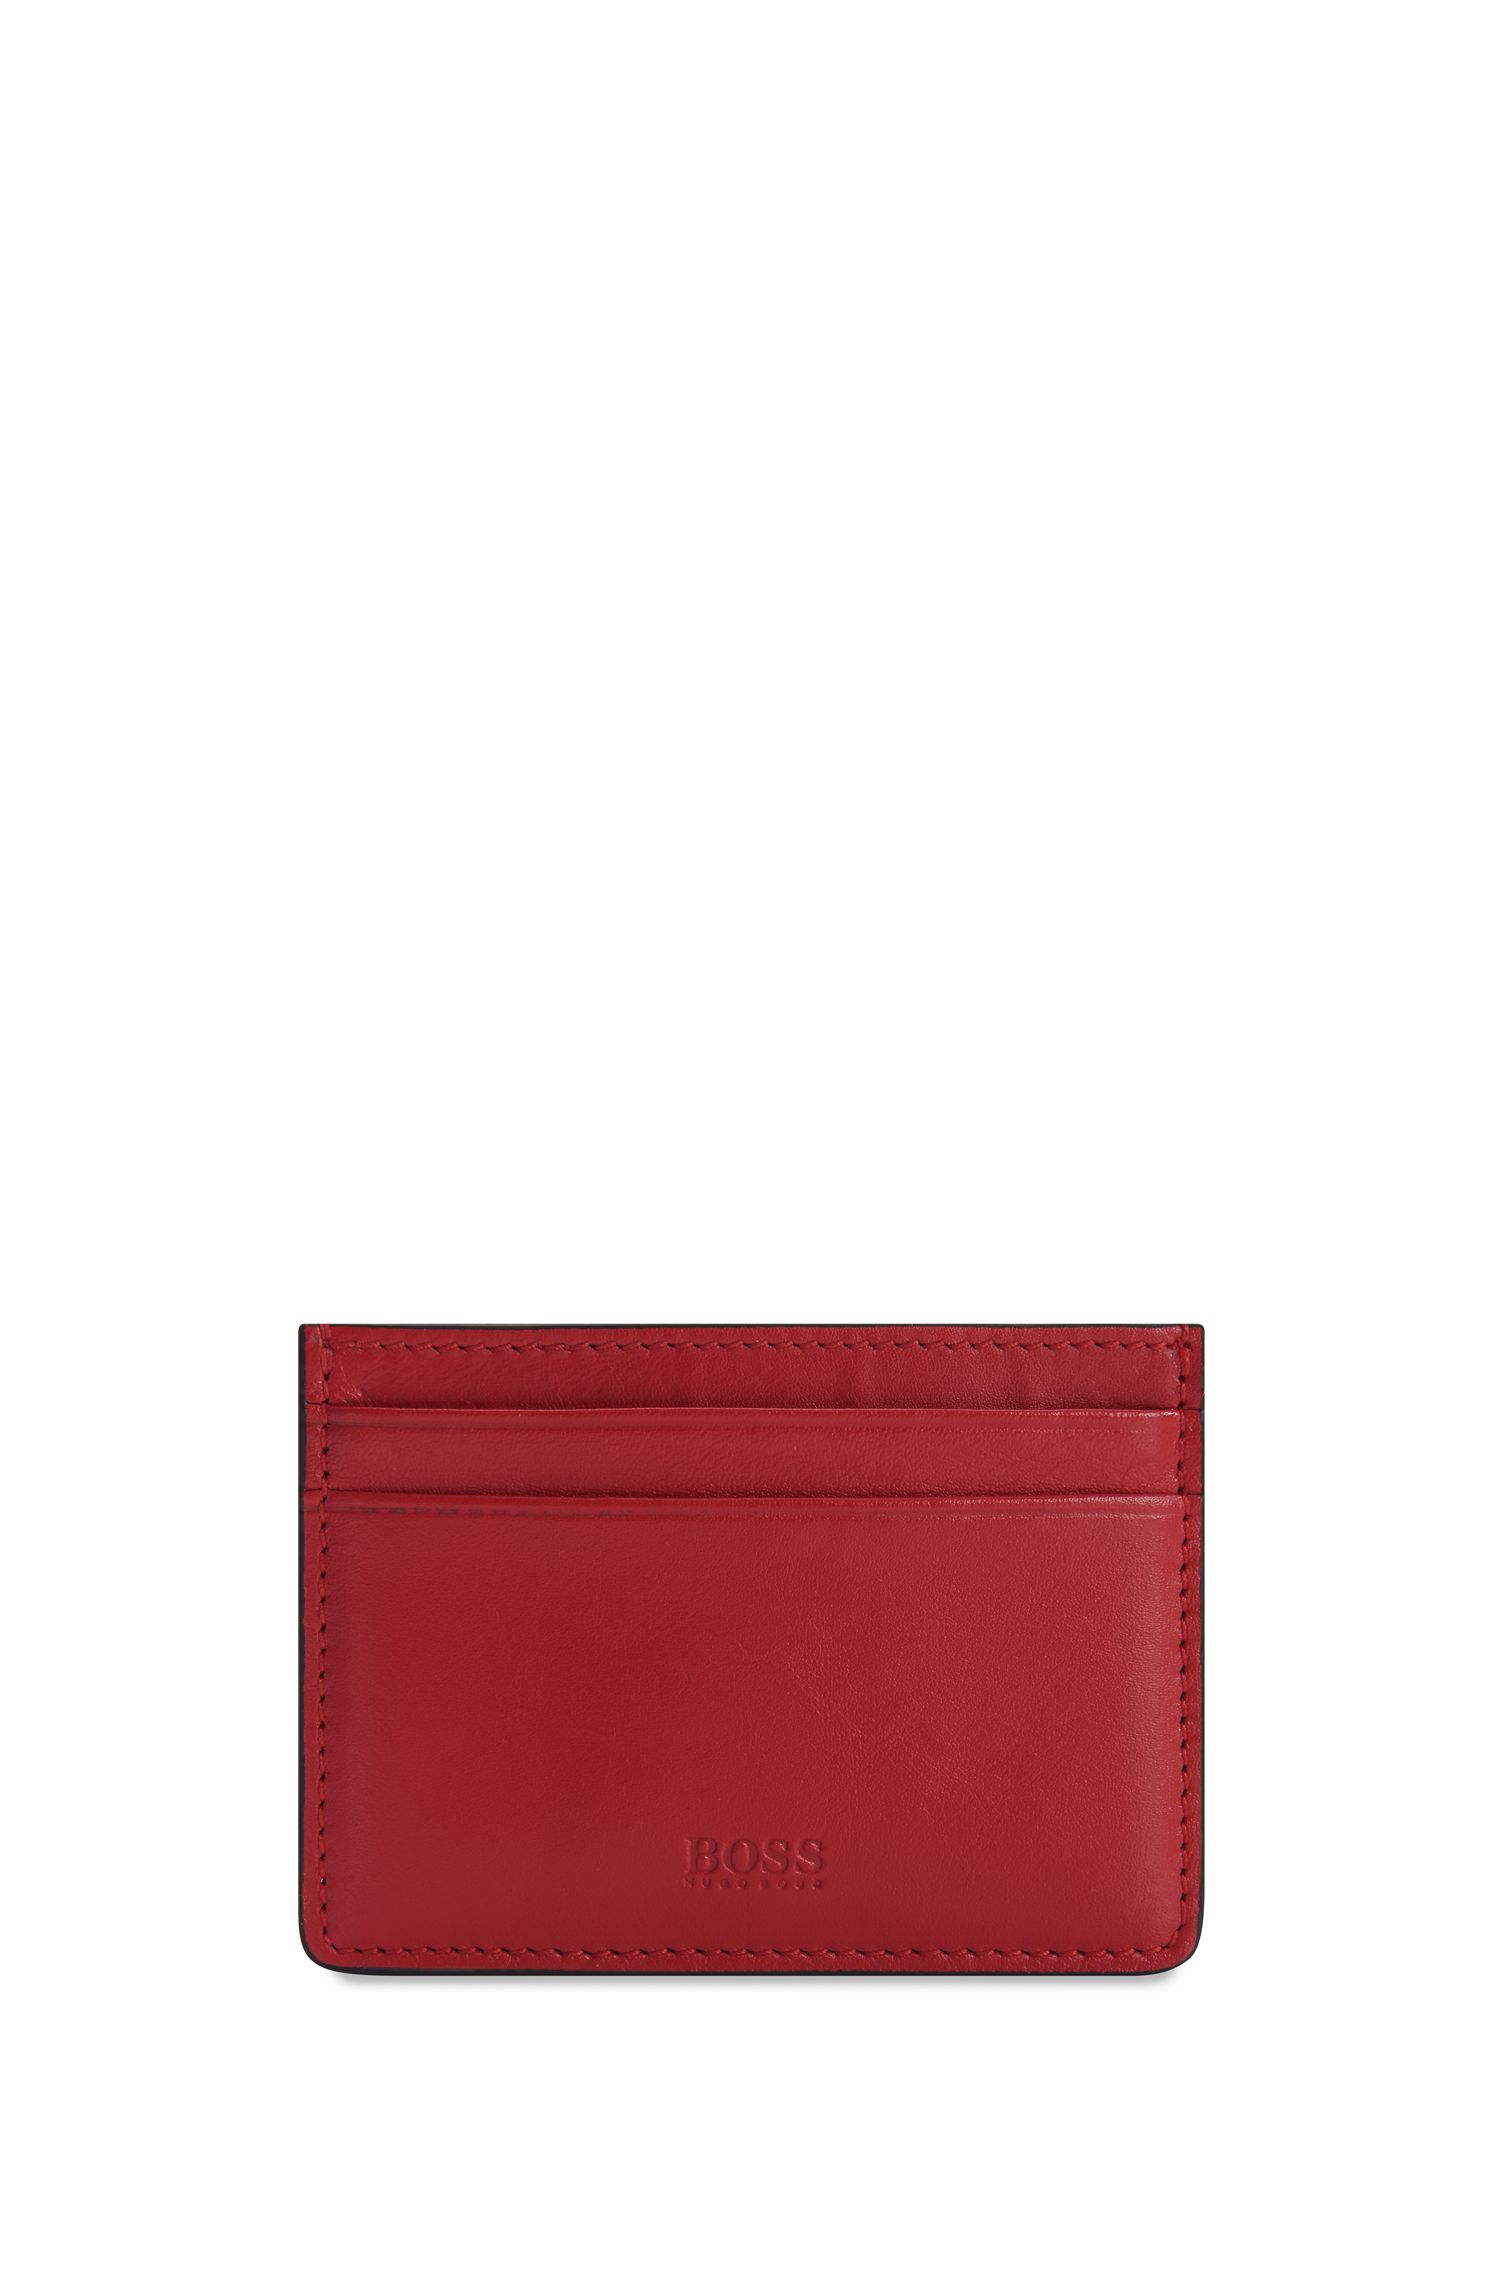 Lunar New Year Leather Cardholder | Holidays